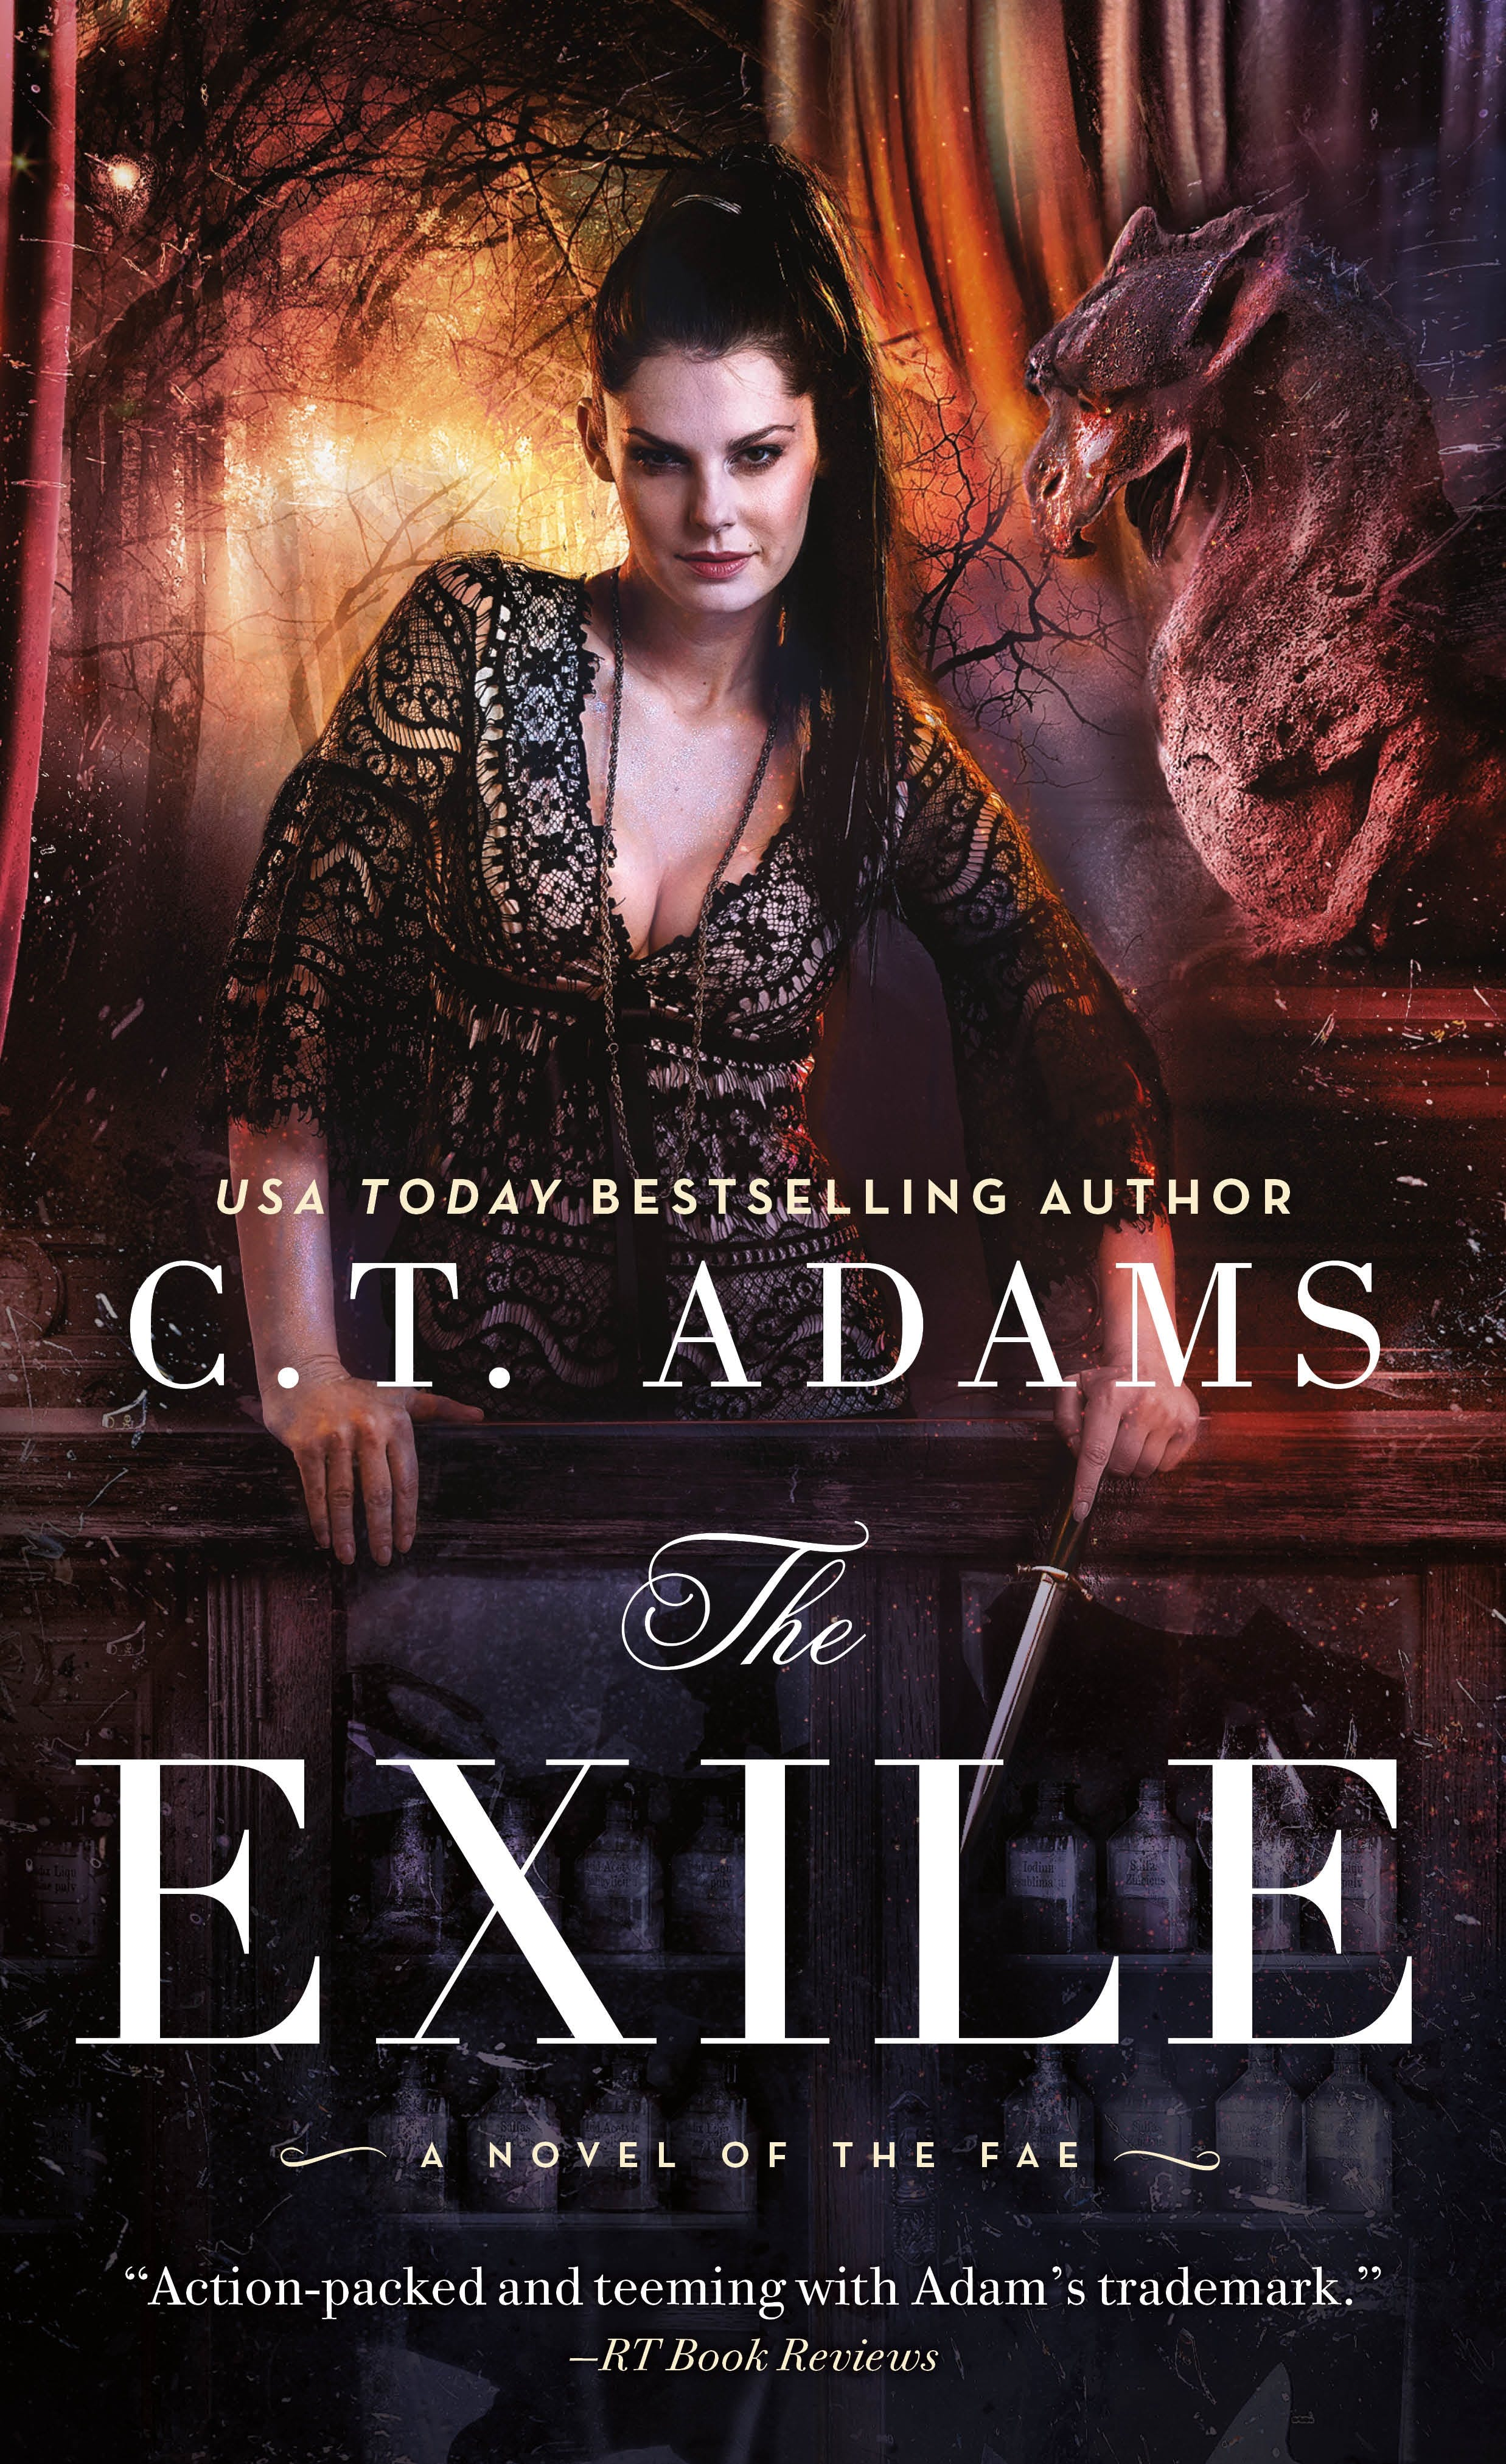 Image of The Exile